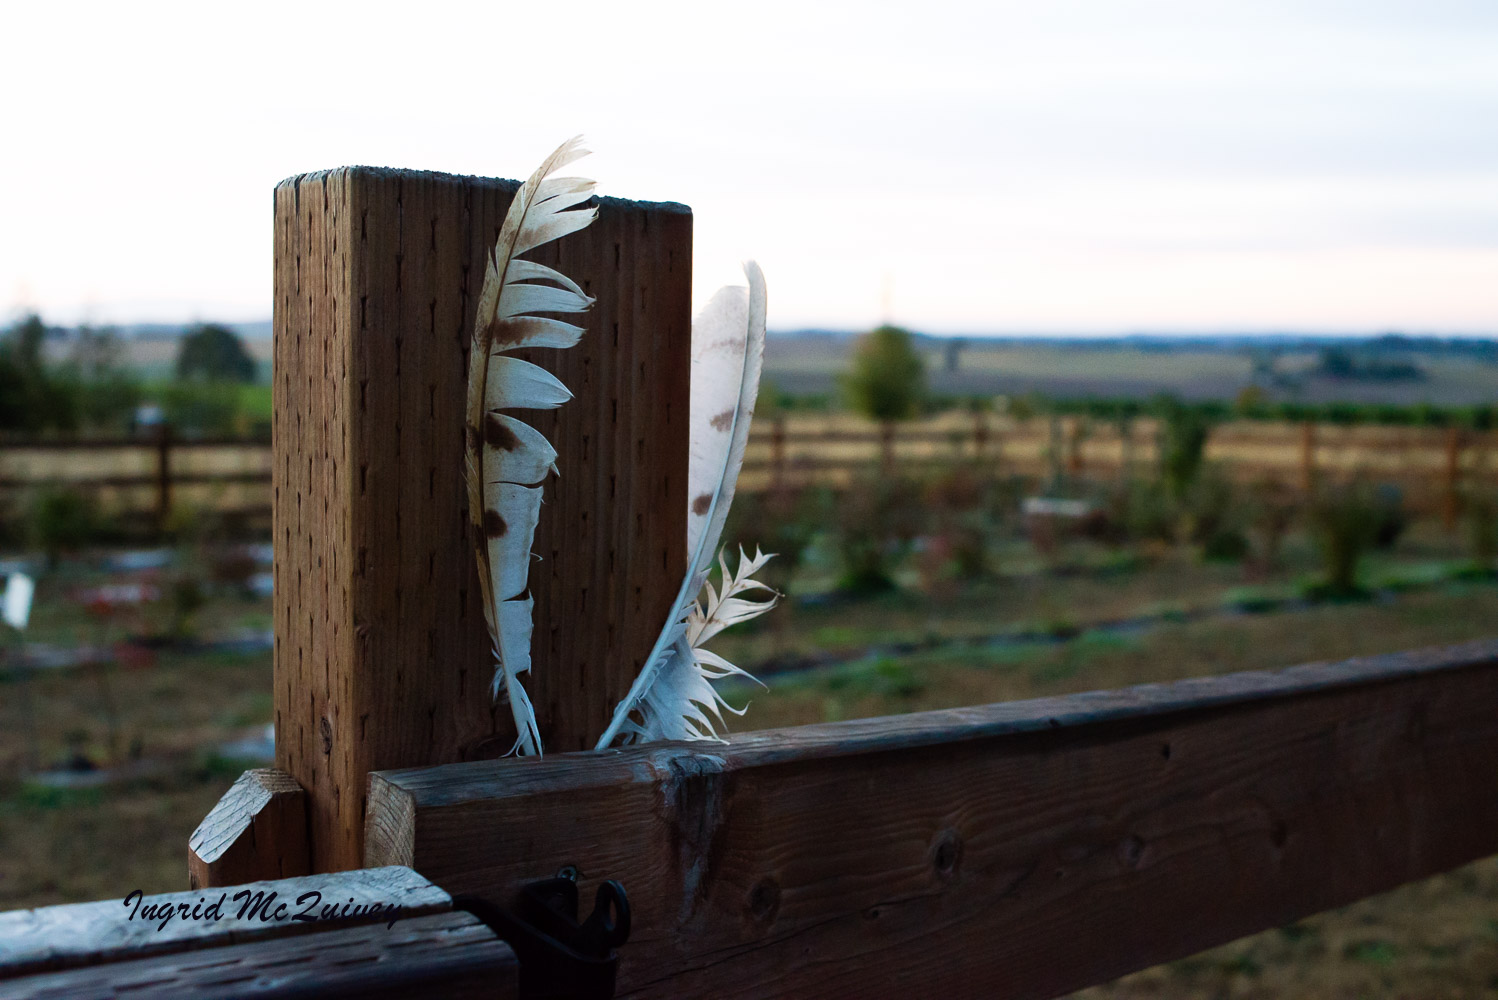 bird feathers - When Trish and I stayed at Blueberry Garden Cottage, we found a feather on our walk and left it inside the cottage. When Dave and I returned, there were several feathers stuck in the fence near the cottage's entrance.